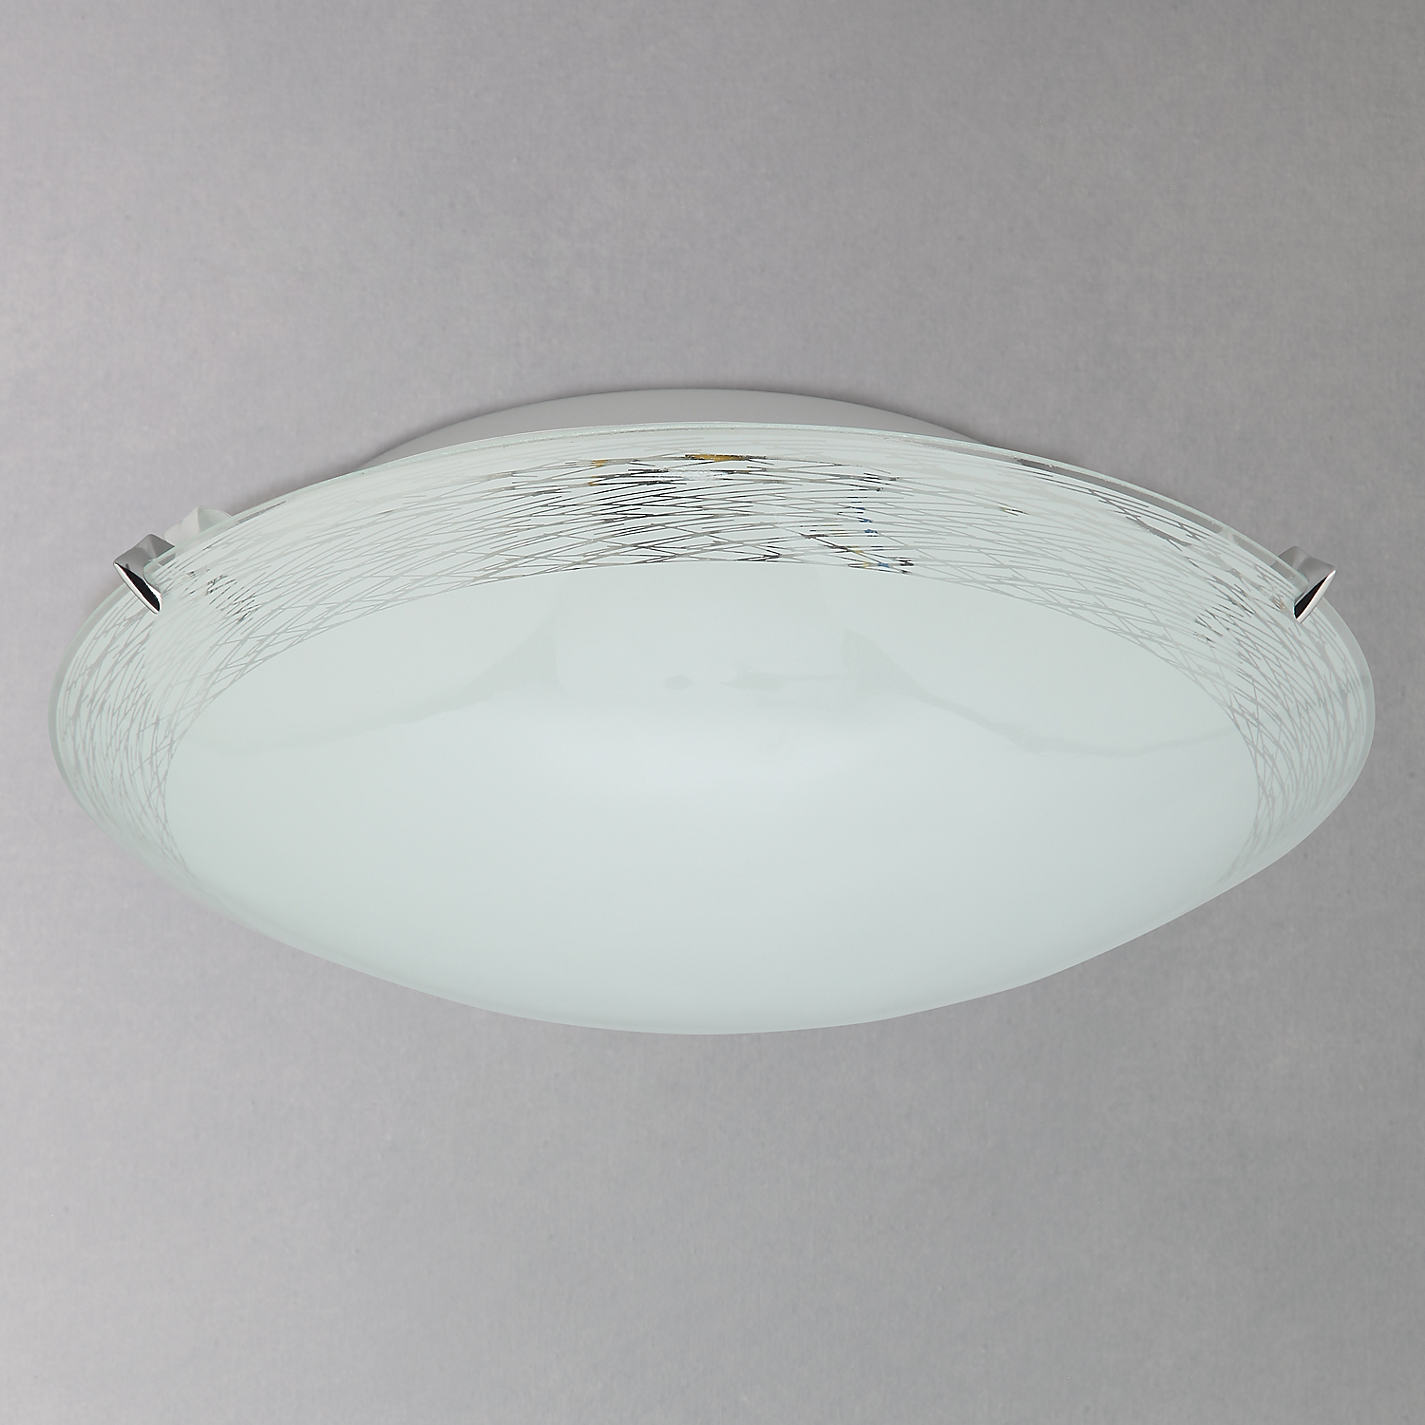 Buy john lewis conrad flush ceiling light john lewis buy john lewis conrad flush ceiling light online at johnlewis aloadofball Gallery